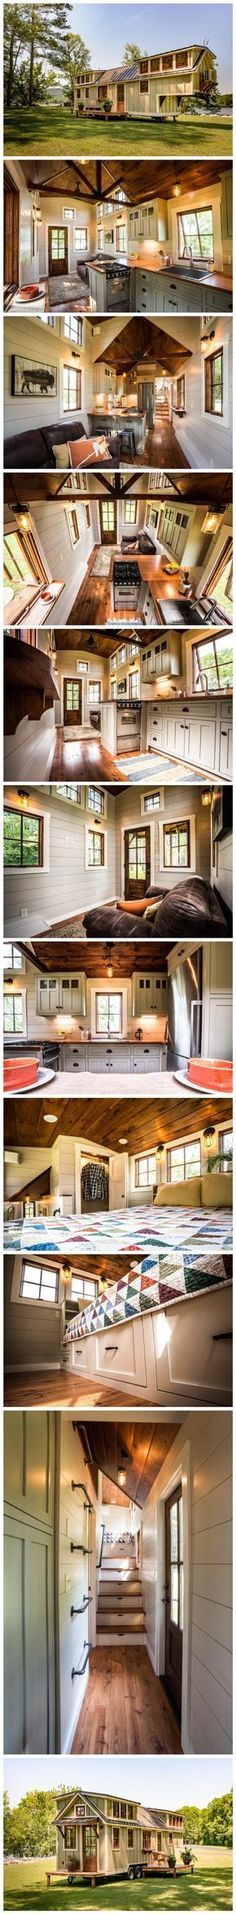 Love the style, needs more color. Tiny House On Wheels, Small House Plans, Timbercraft Tiny Homes, Small House Living, Living Room, Tiny House Nation, Up House, House Floor, Tiny House Movement